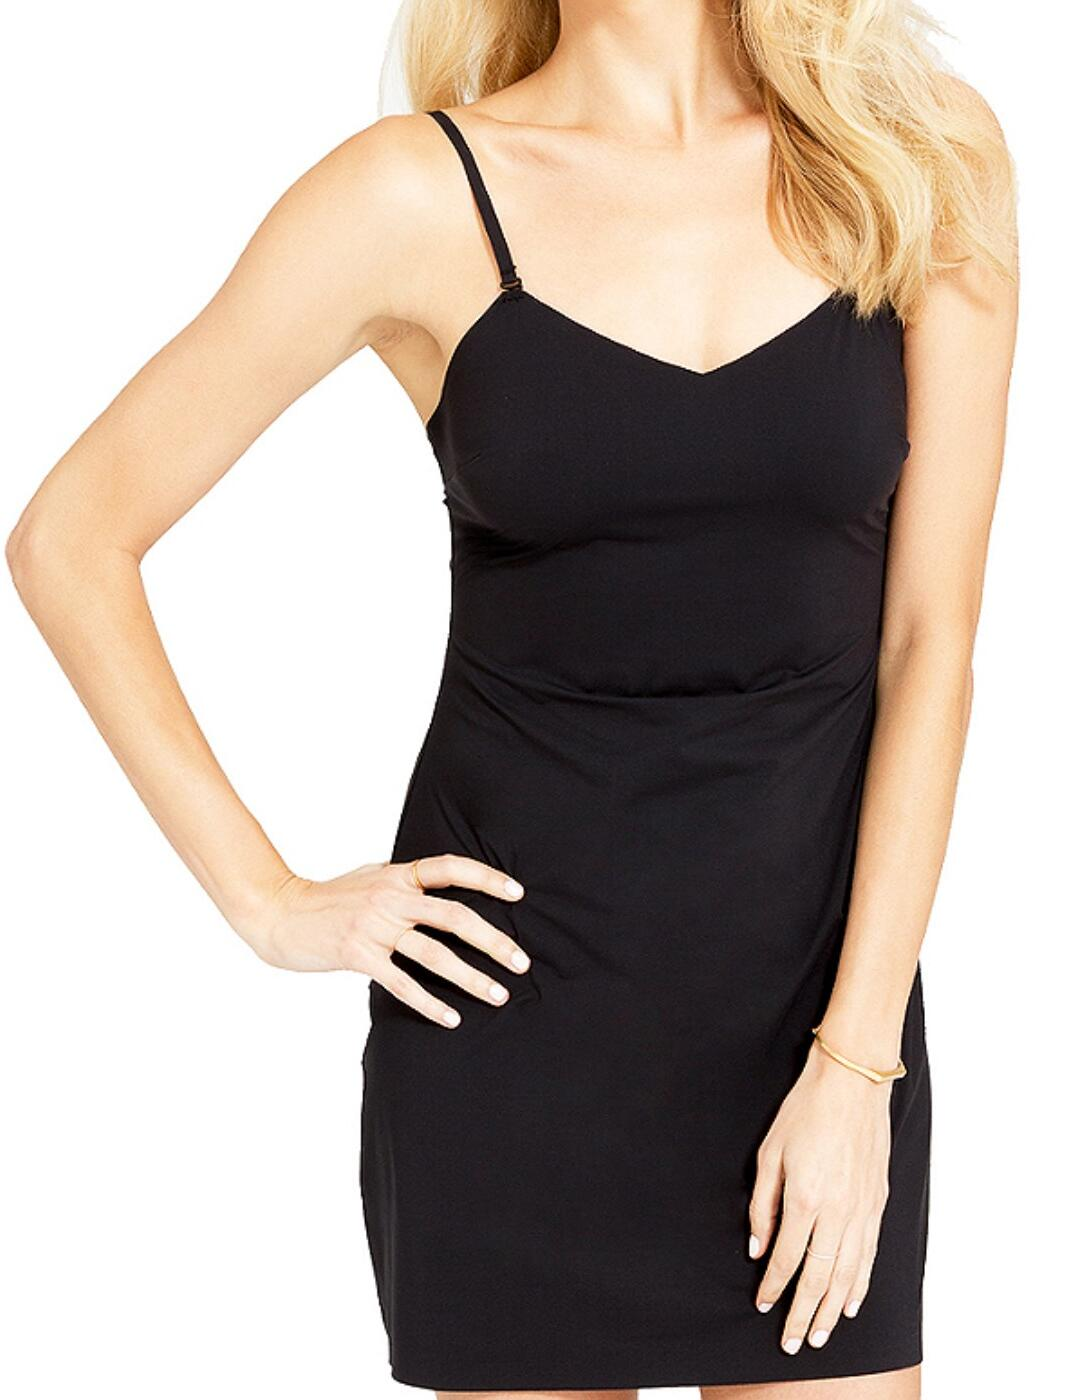 10019R Spanx Thinstincts Convertible Low Back Shap - 10019R Black